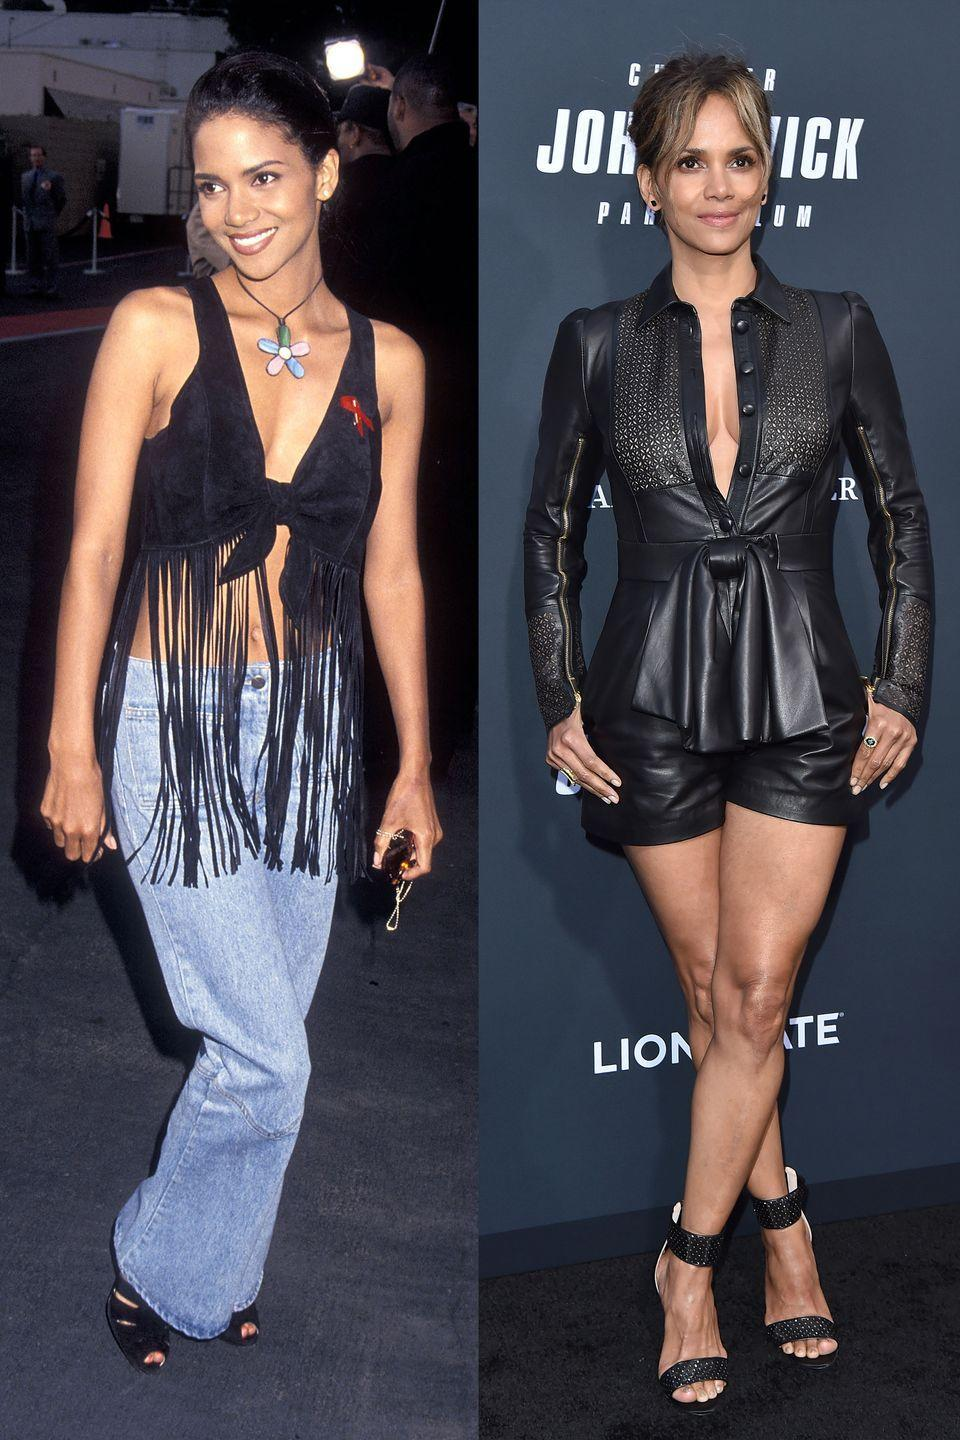 <p>We're here for the fringe top, but we'll accept the leather shorts as a suitable replacement.</p>